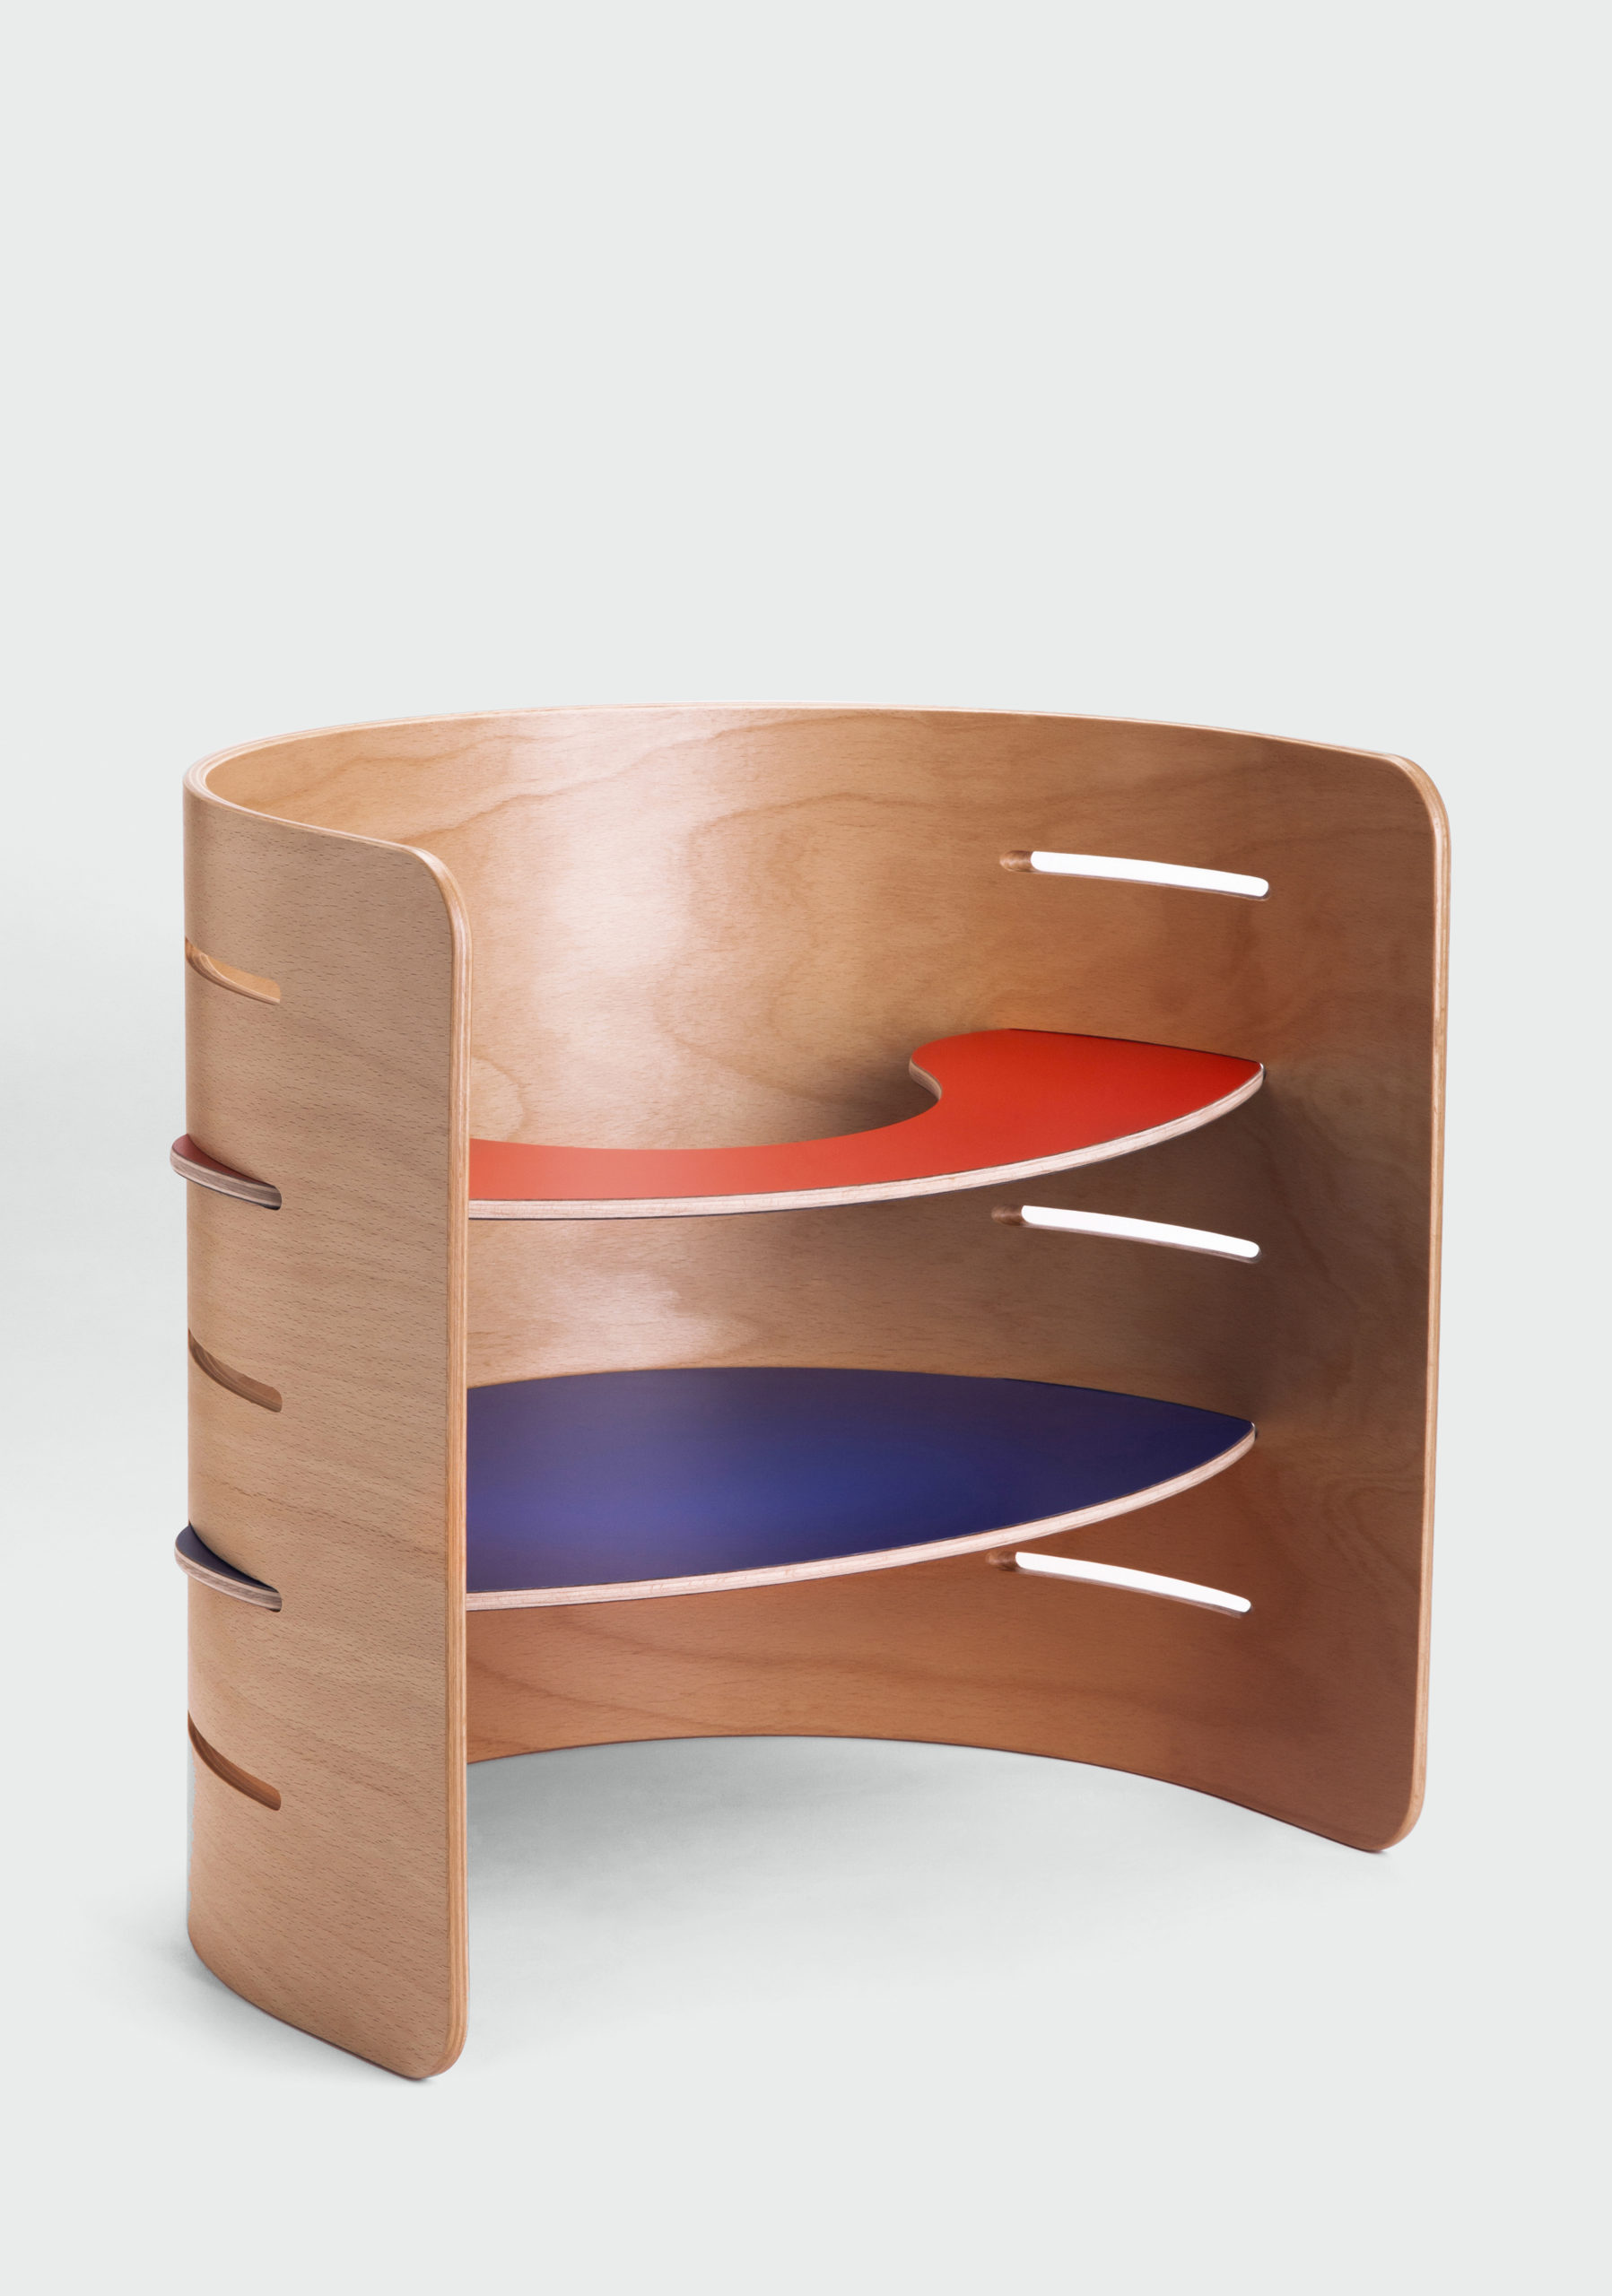 Architectmade-Childs-Chair-Plywood-Laminate-Kristian-Vedel-2